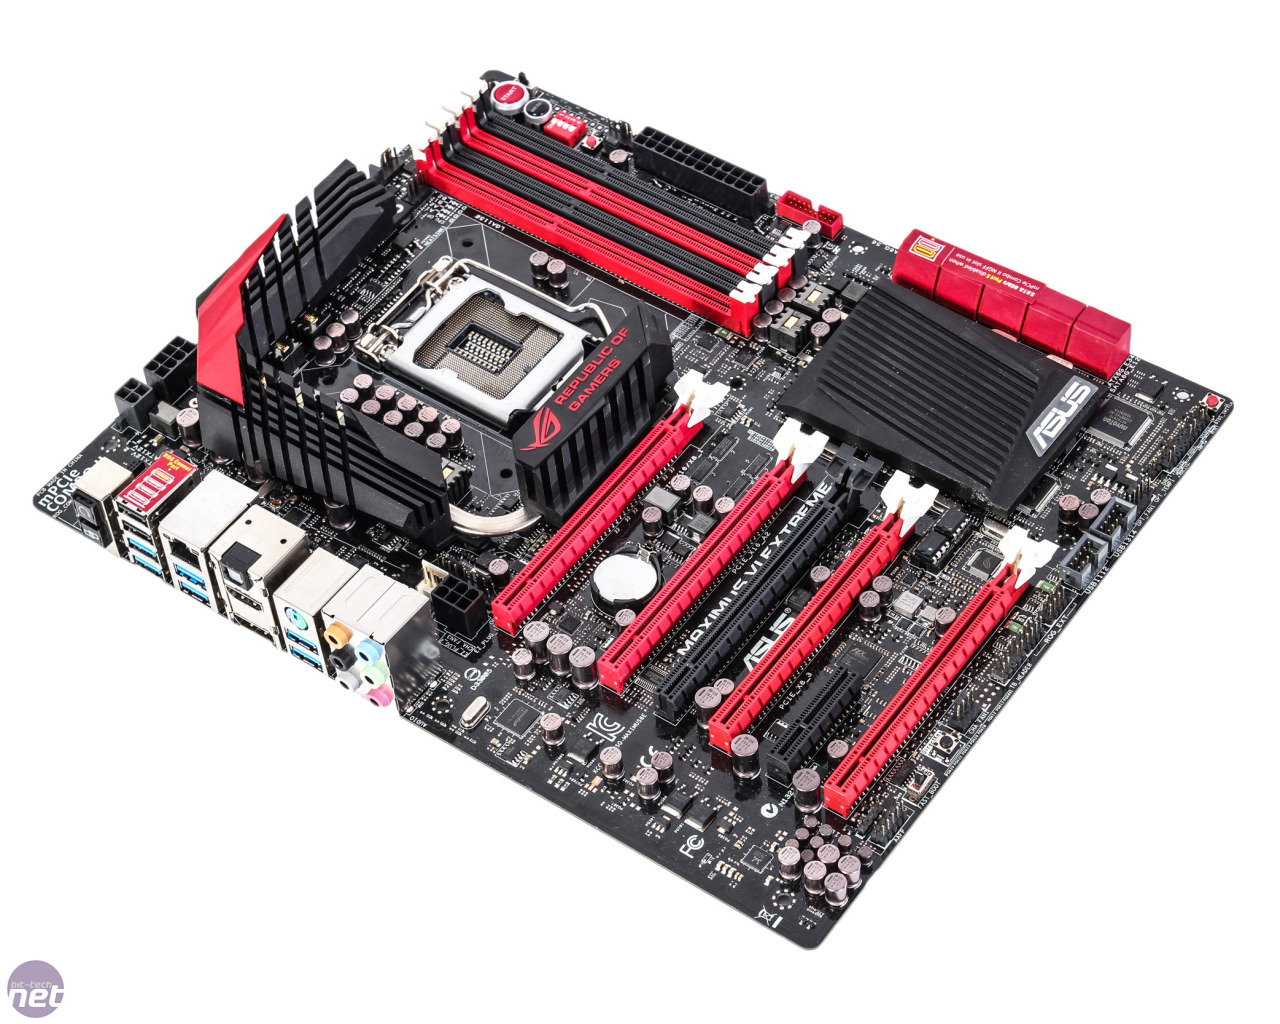 Asus Maximus VI Extreme Review Asus Maximus VI Extreme (Z87) Review ...